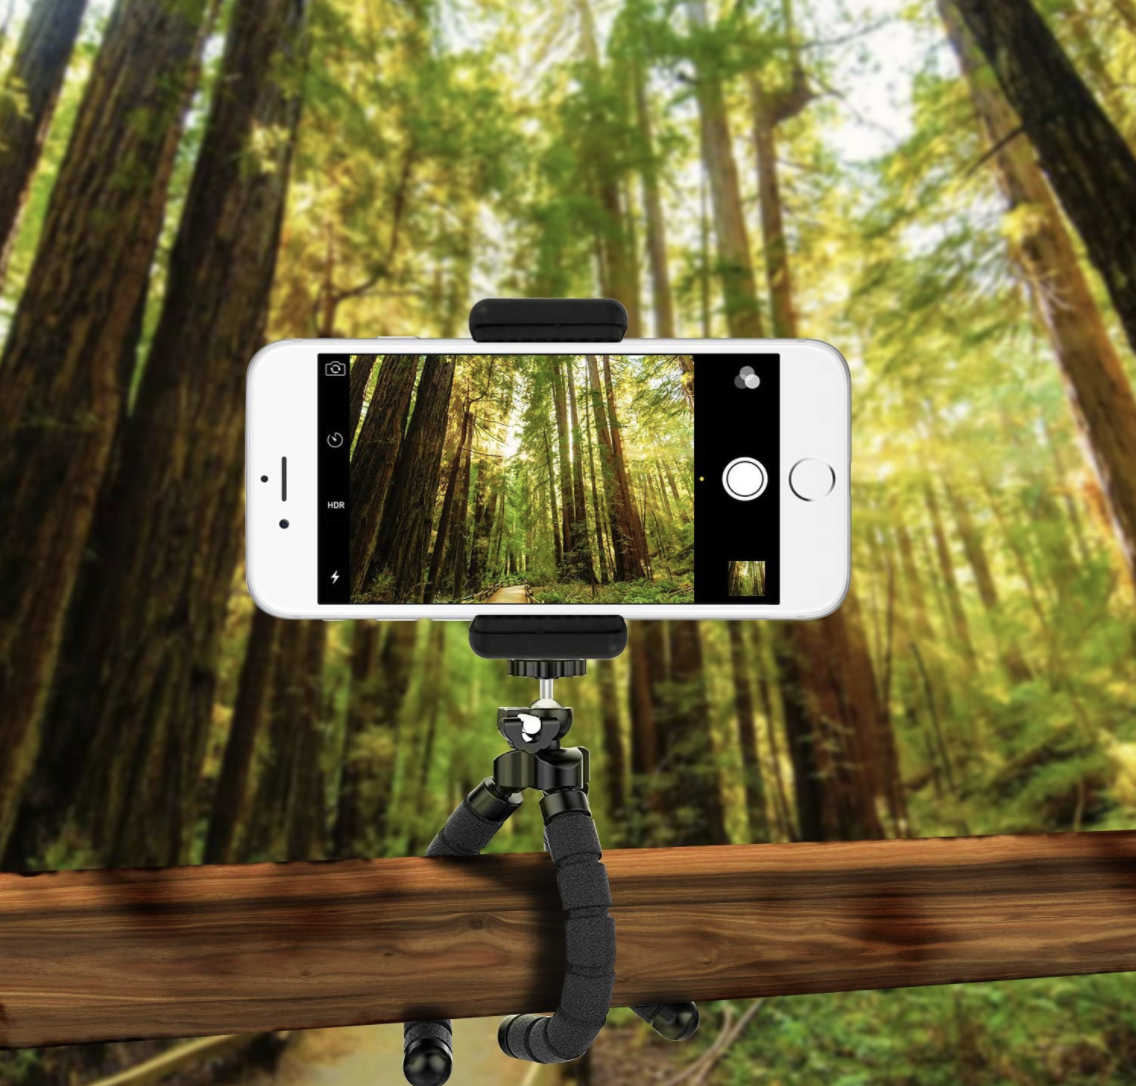 A flexible tripod, holding a phone and attached to a branch.